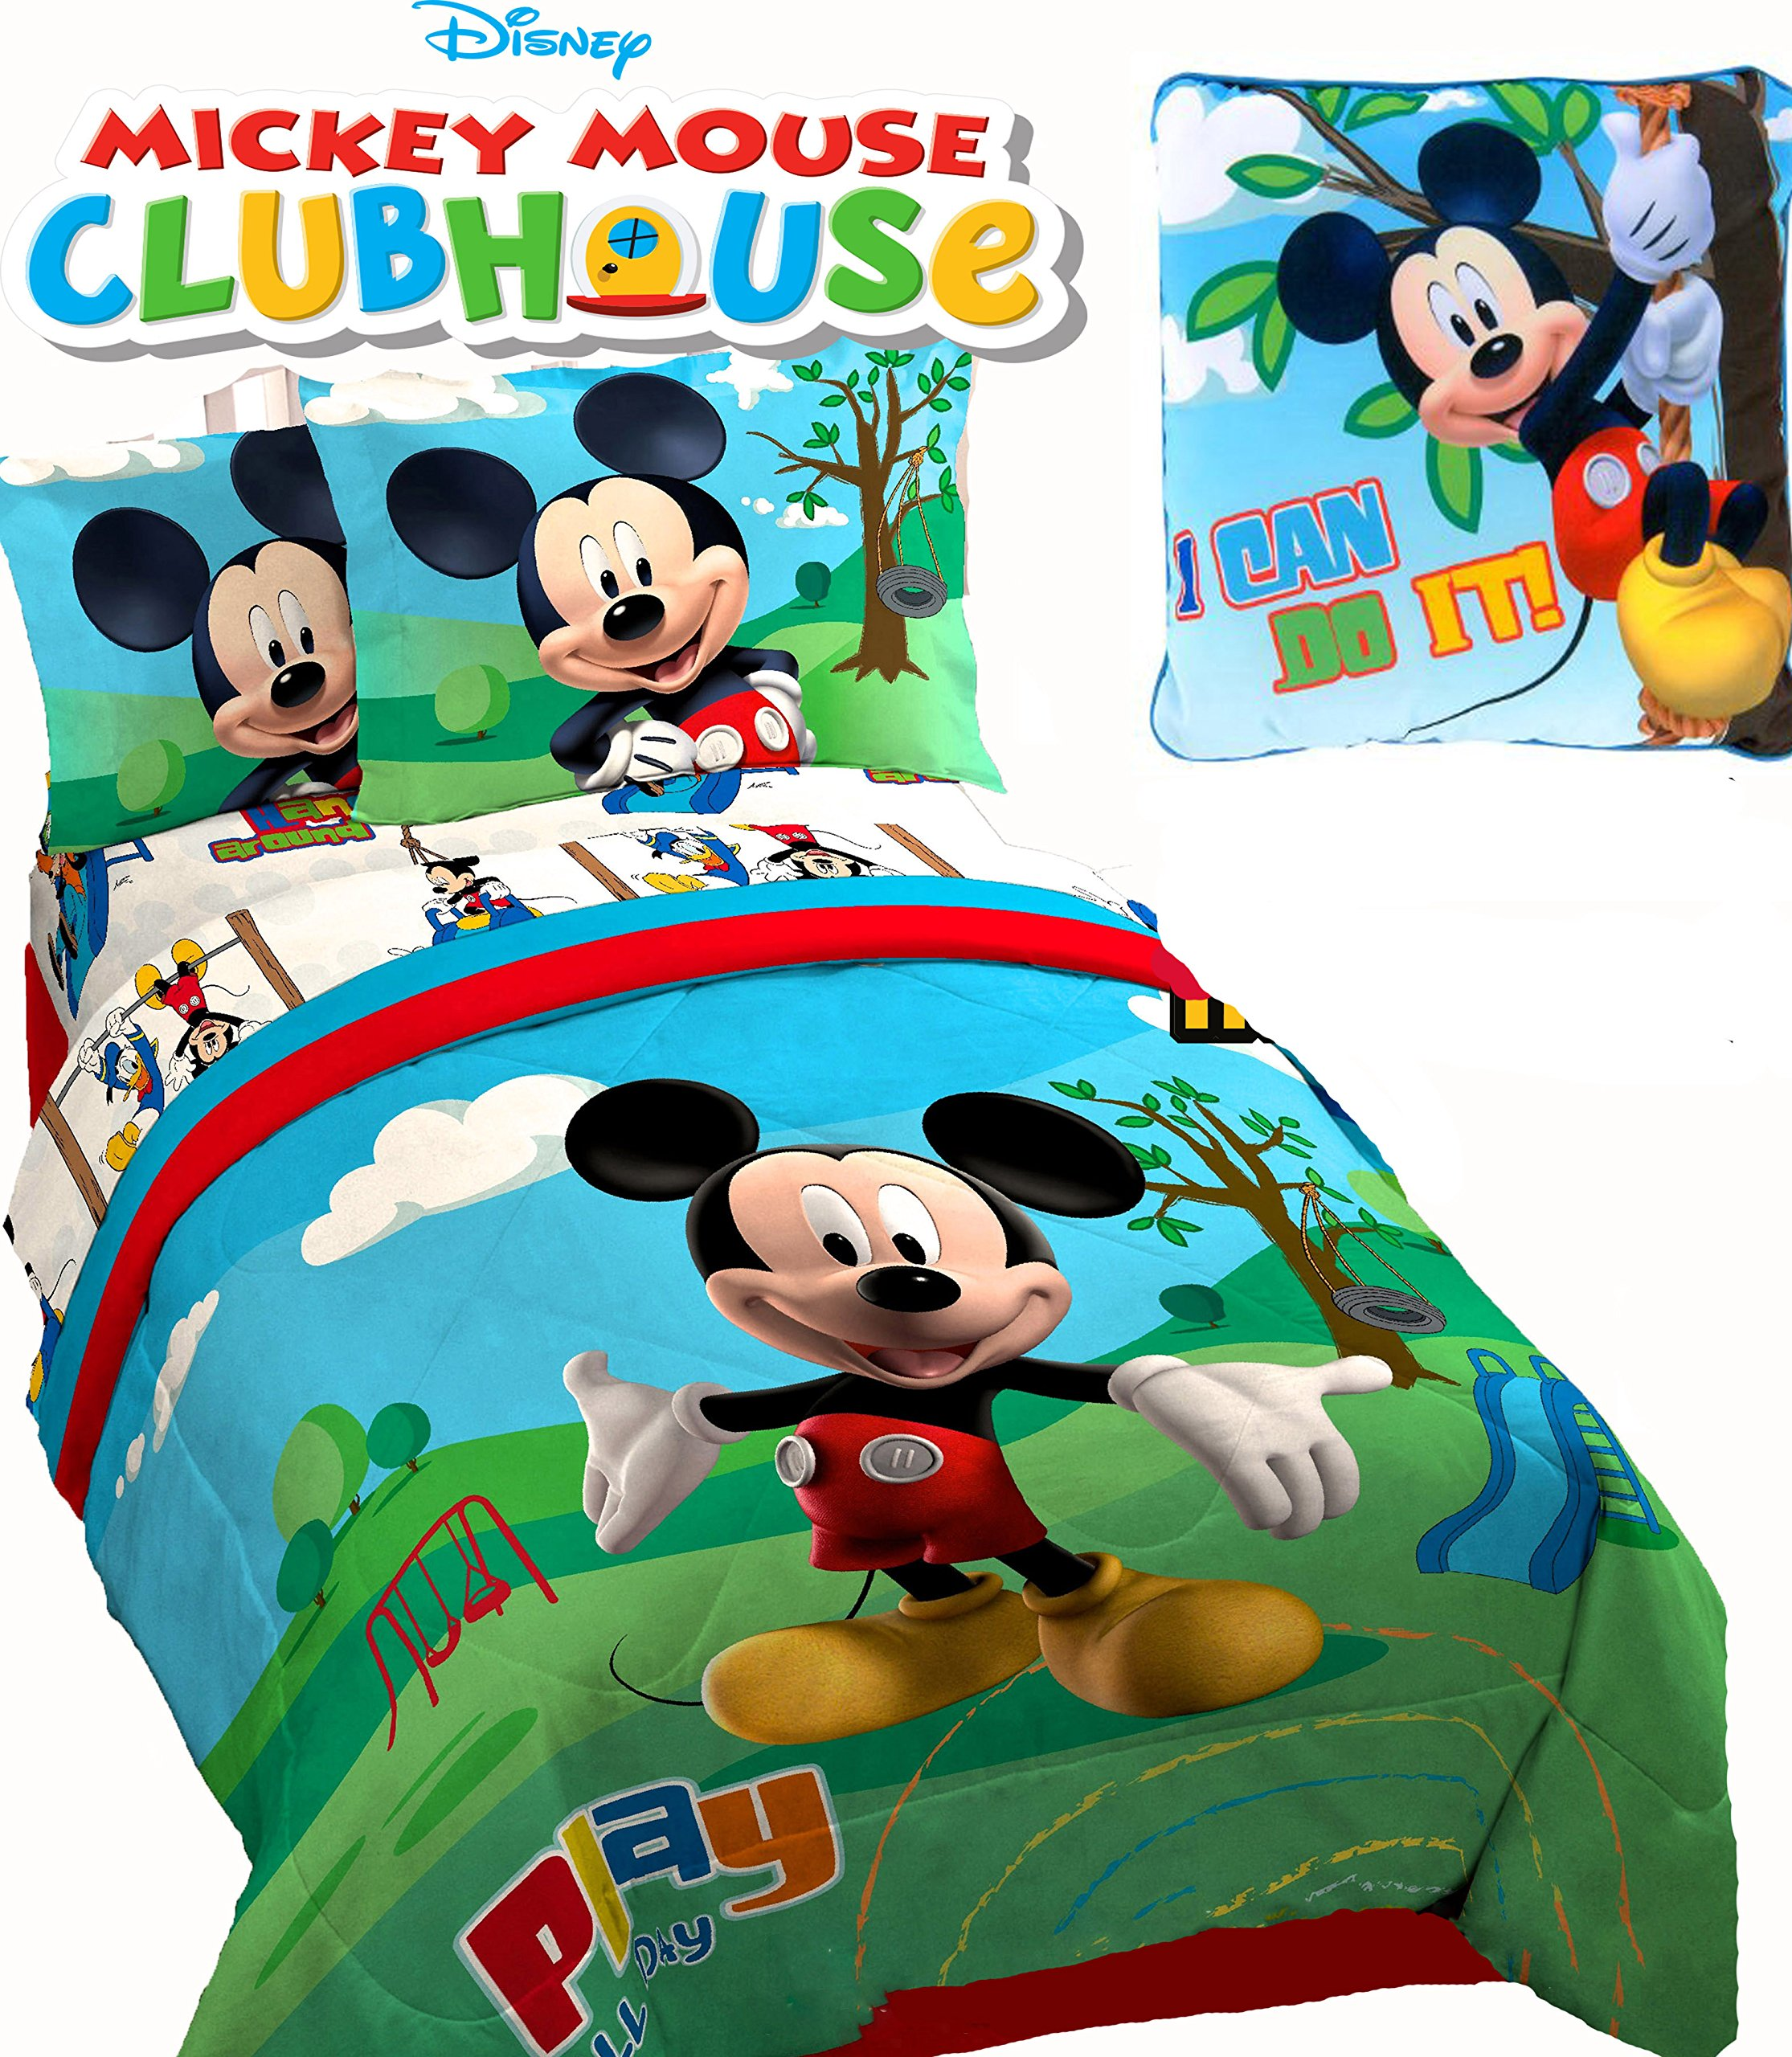 MICKEY MOUSE Club House ''Play'' TWIN SIZE COMFORTER (64'' x 86''), ONE SHAM, ONE BEDSKIRT, Twin SHEET SET & ONE TOSS PILLOW!